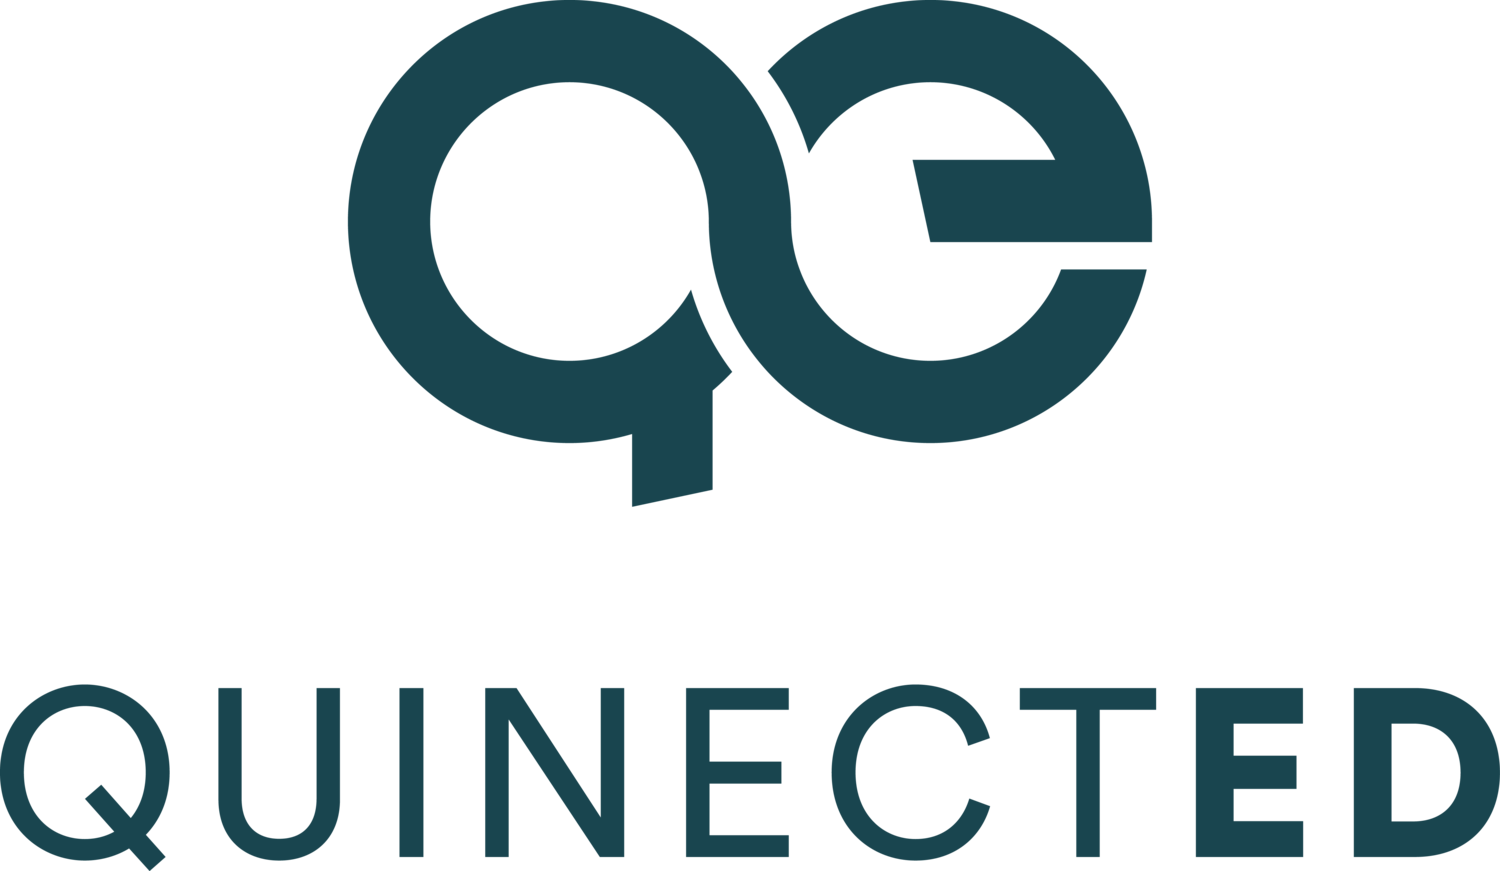 Quinect Education